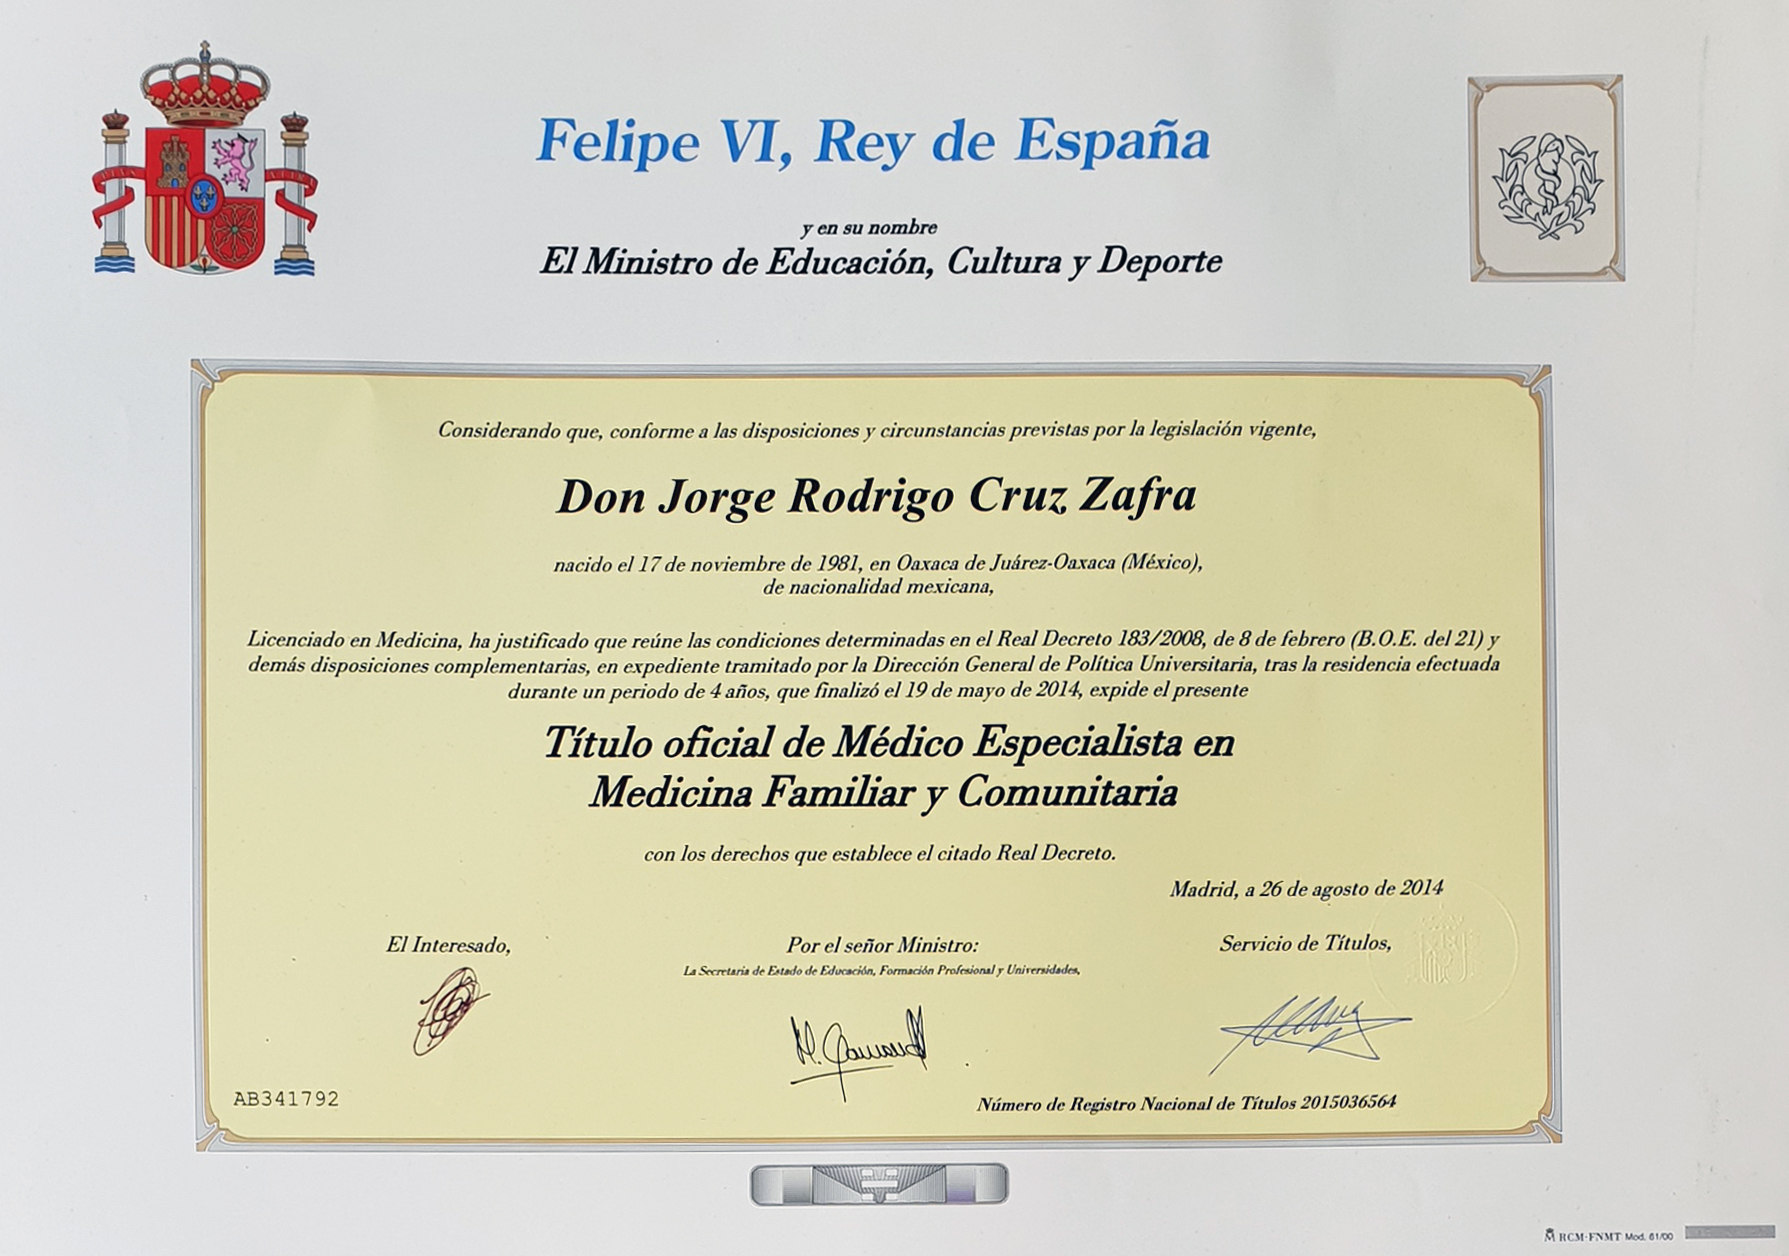 General Practitioner title from Spain